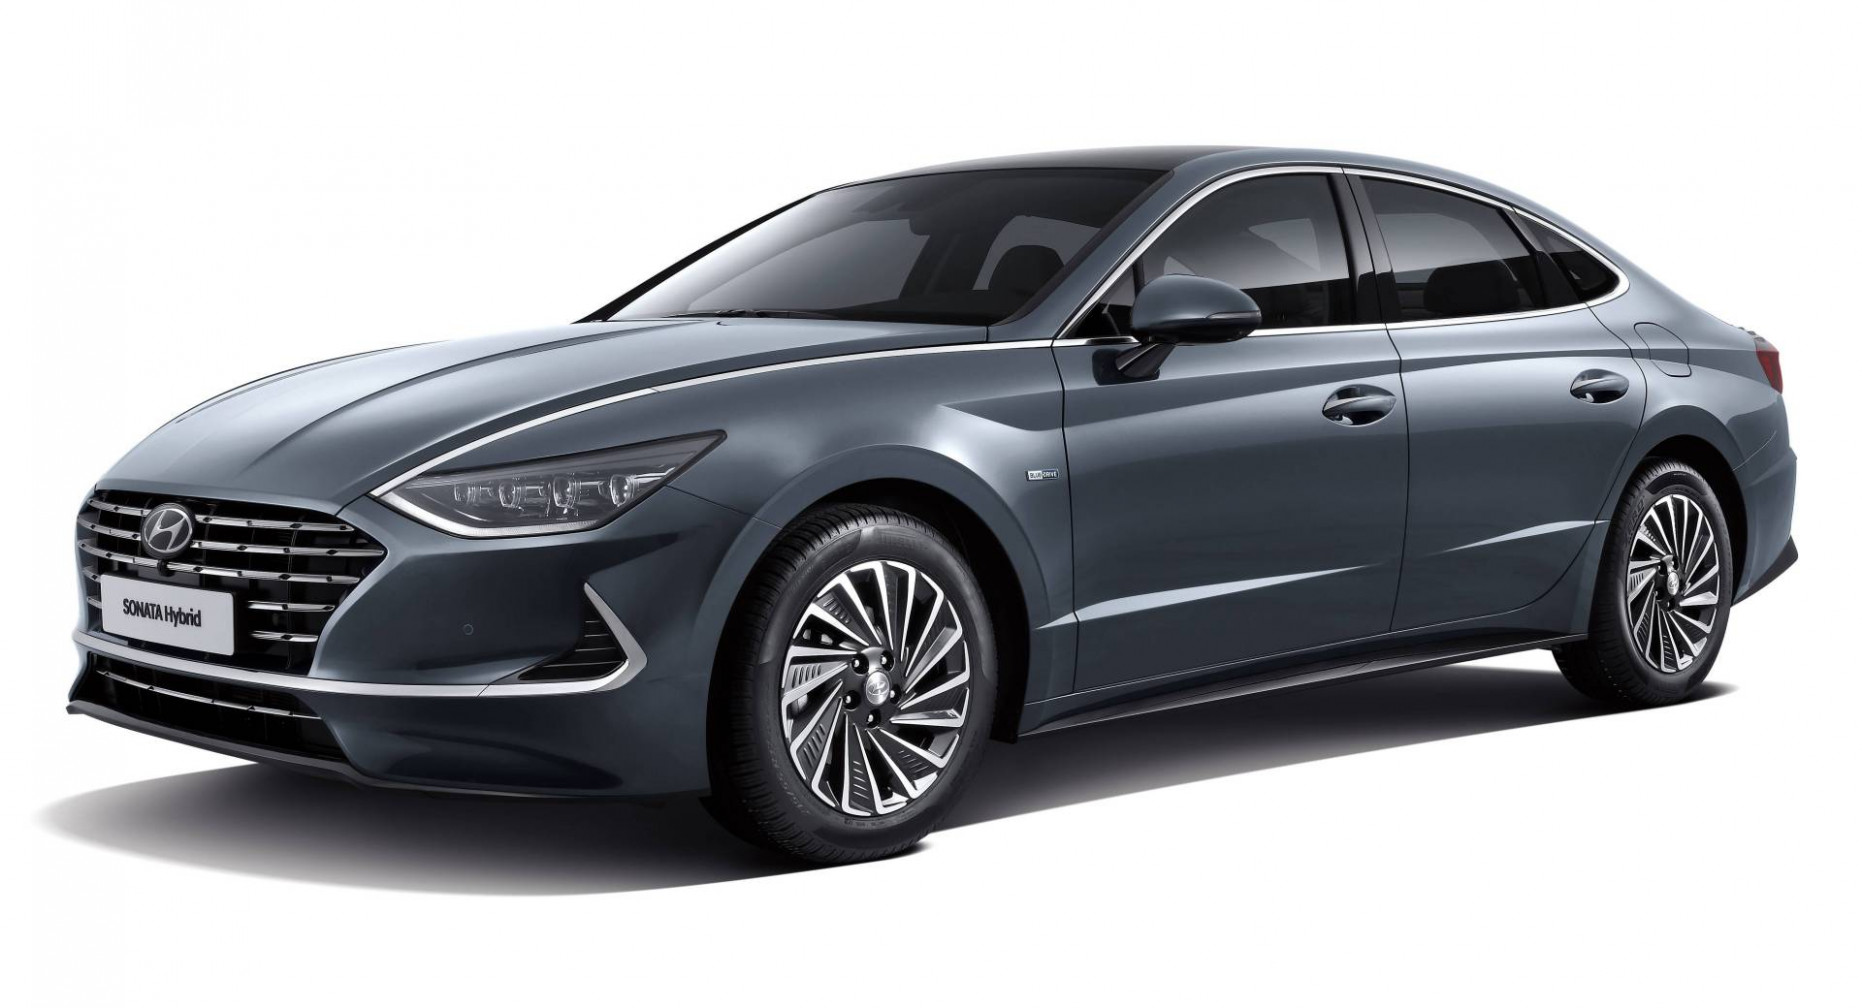 Hyundai Announces An Eco-Friendly Model For Chicago, Could Be The ..